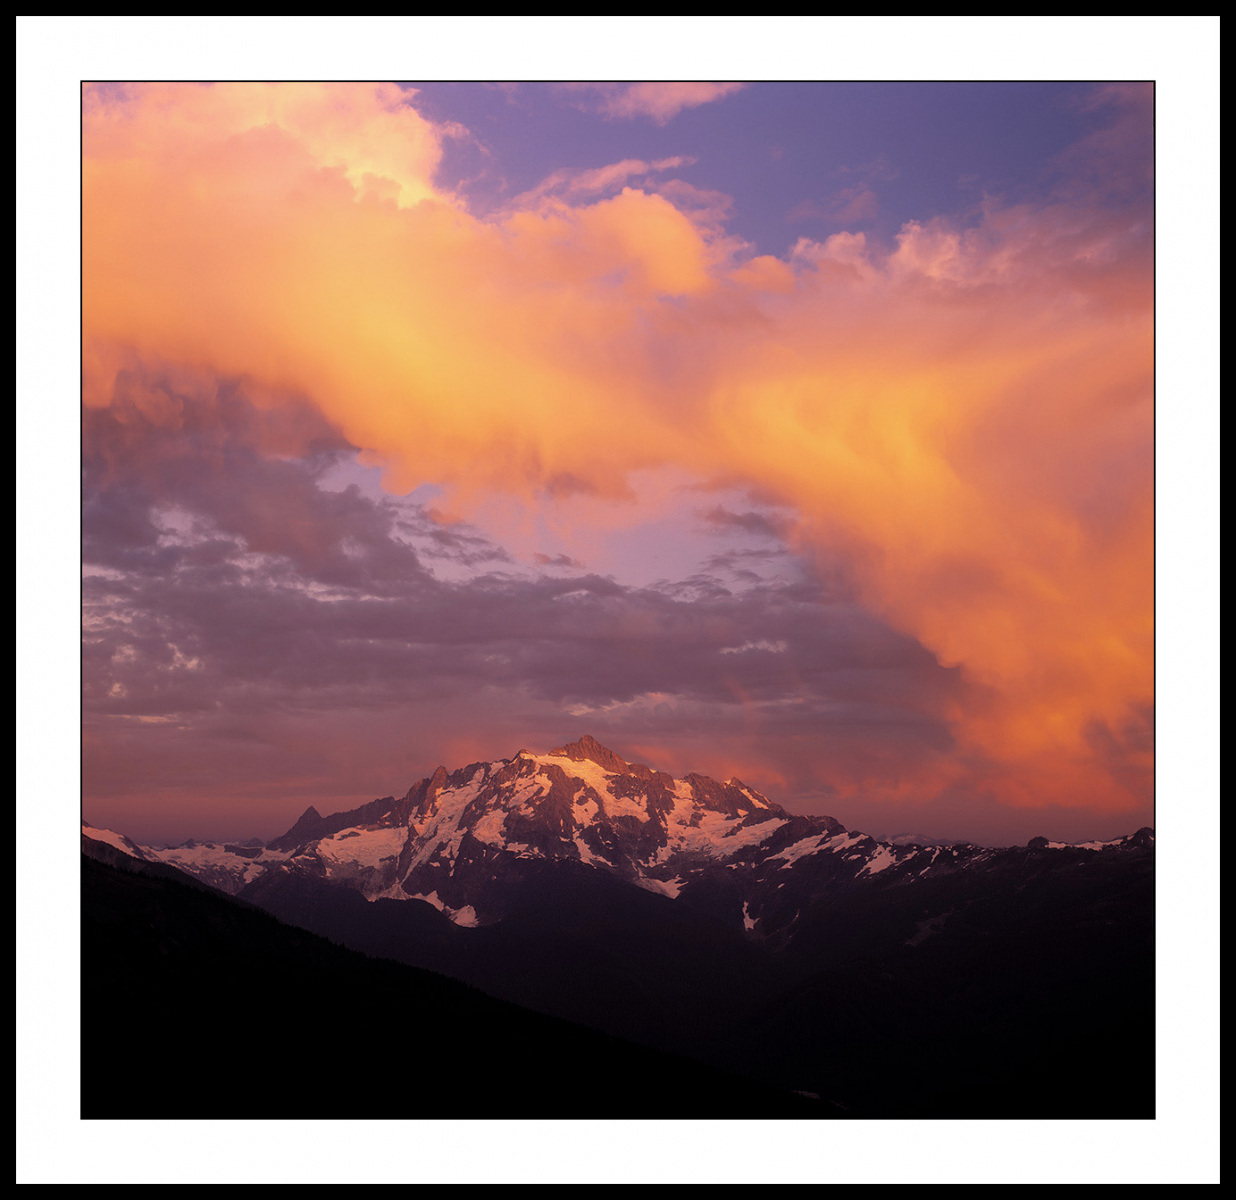 Mount Shuksan Sunset from Yellow Aster Butte - North Cascade Mountains, Washington